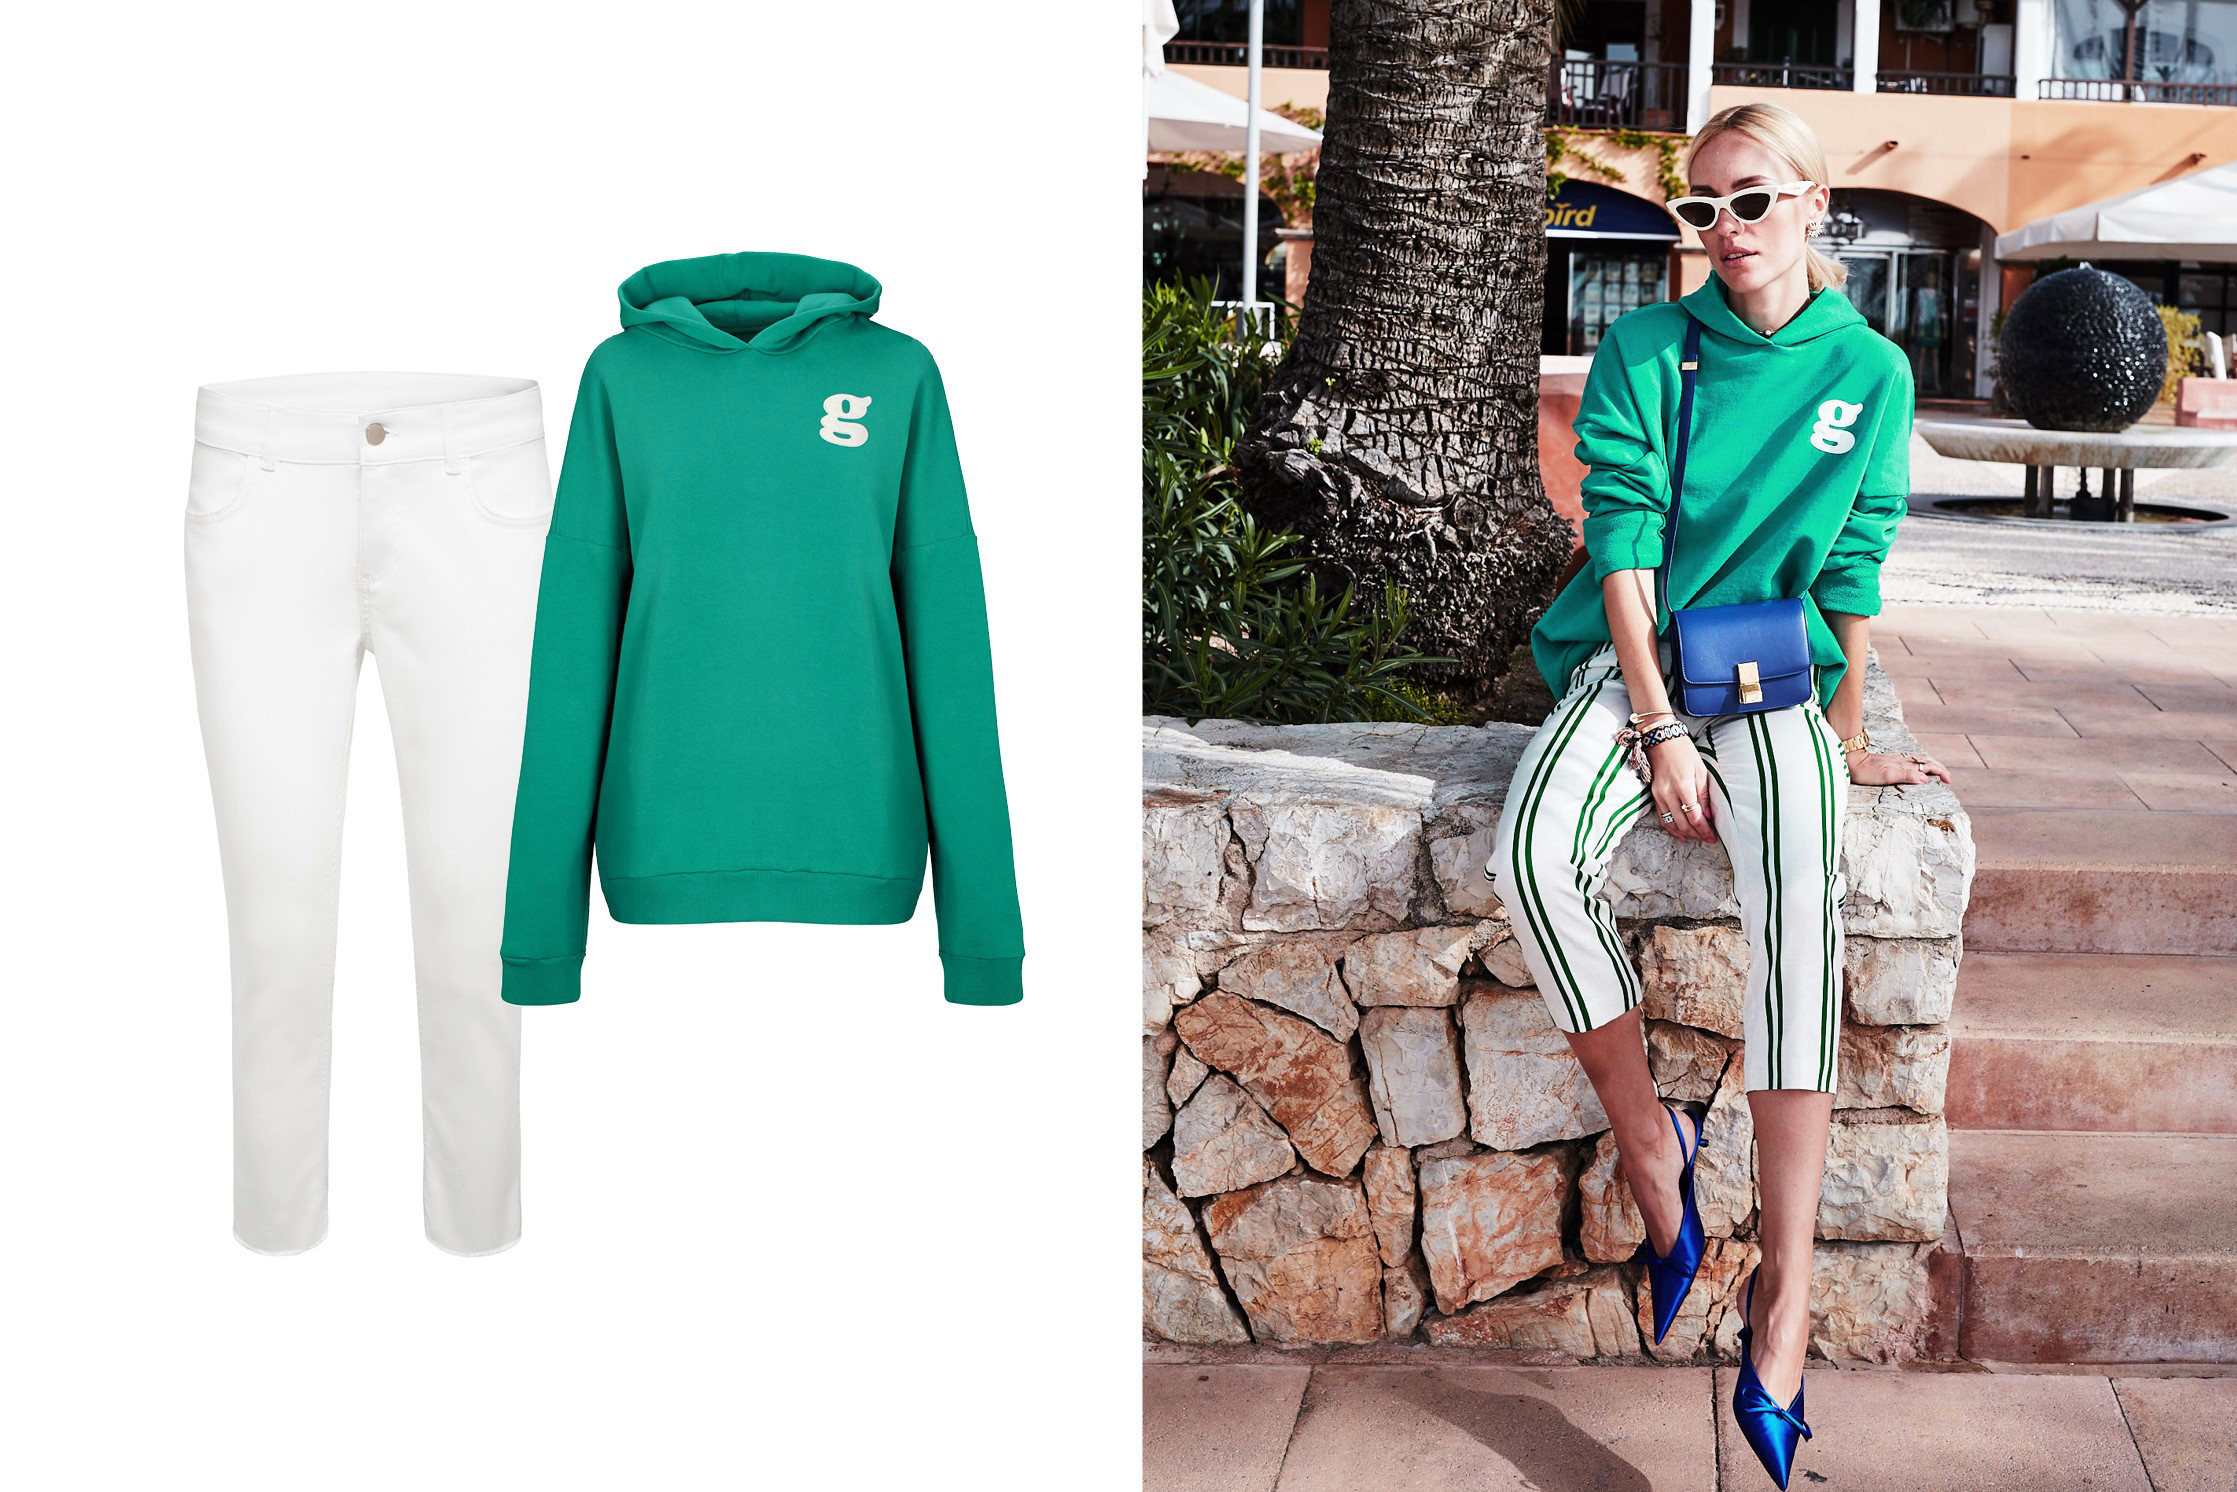 Sommer Trend - Hoodie Fever